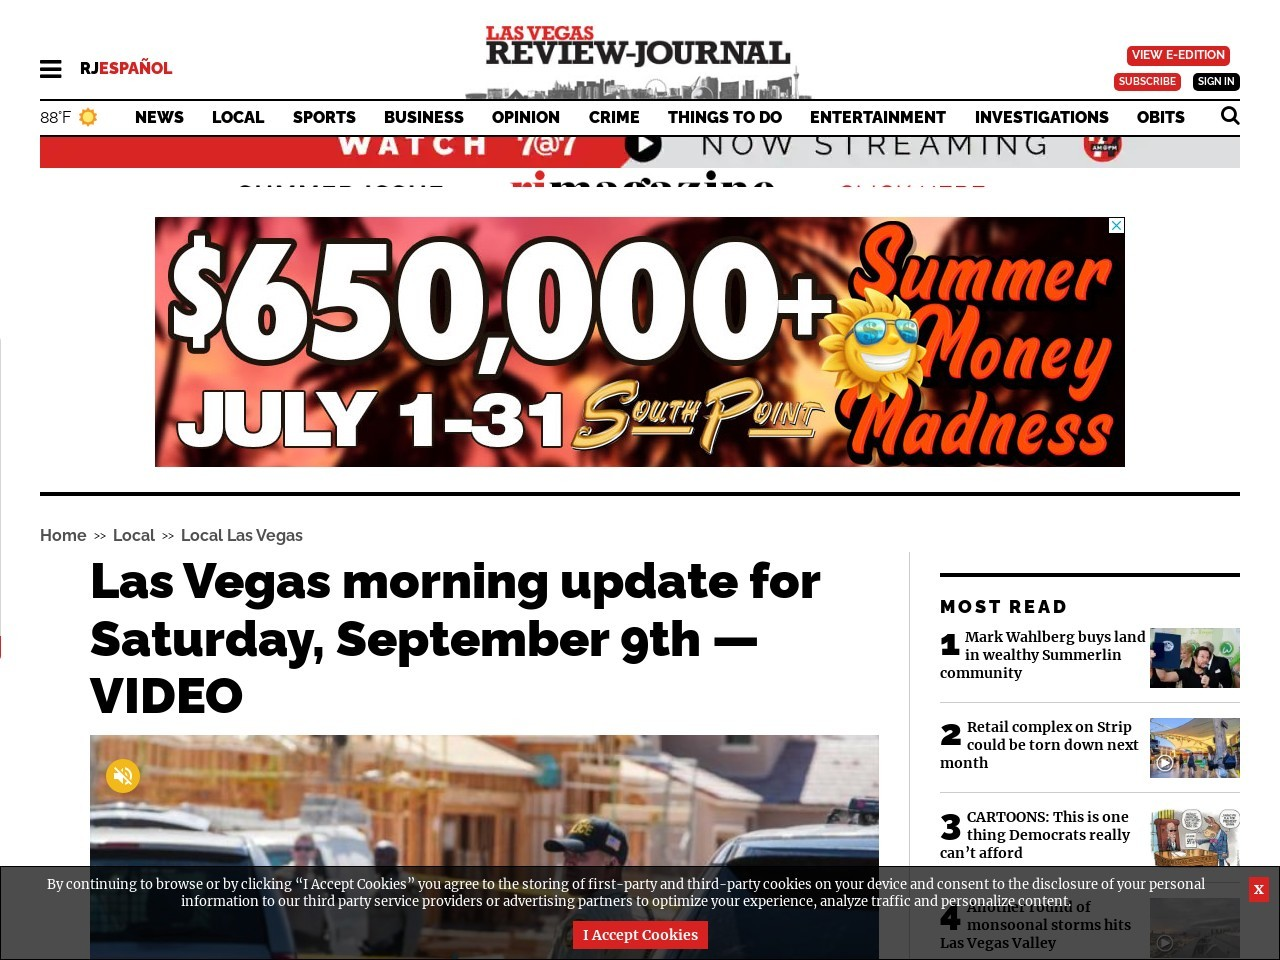 Las Vegas morning update for Saturday, September 9th — VIDEO